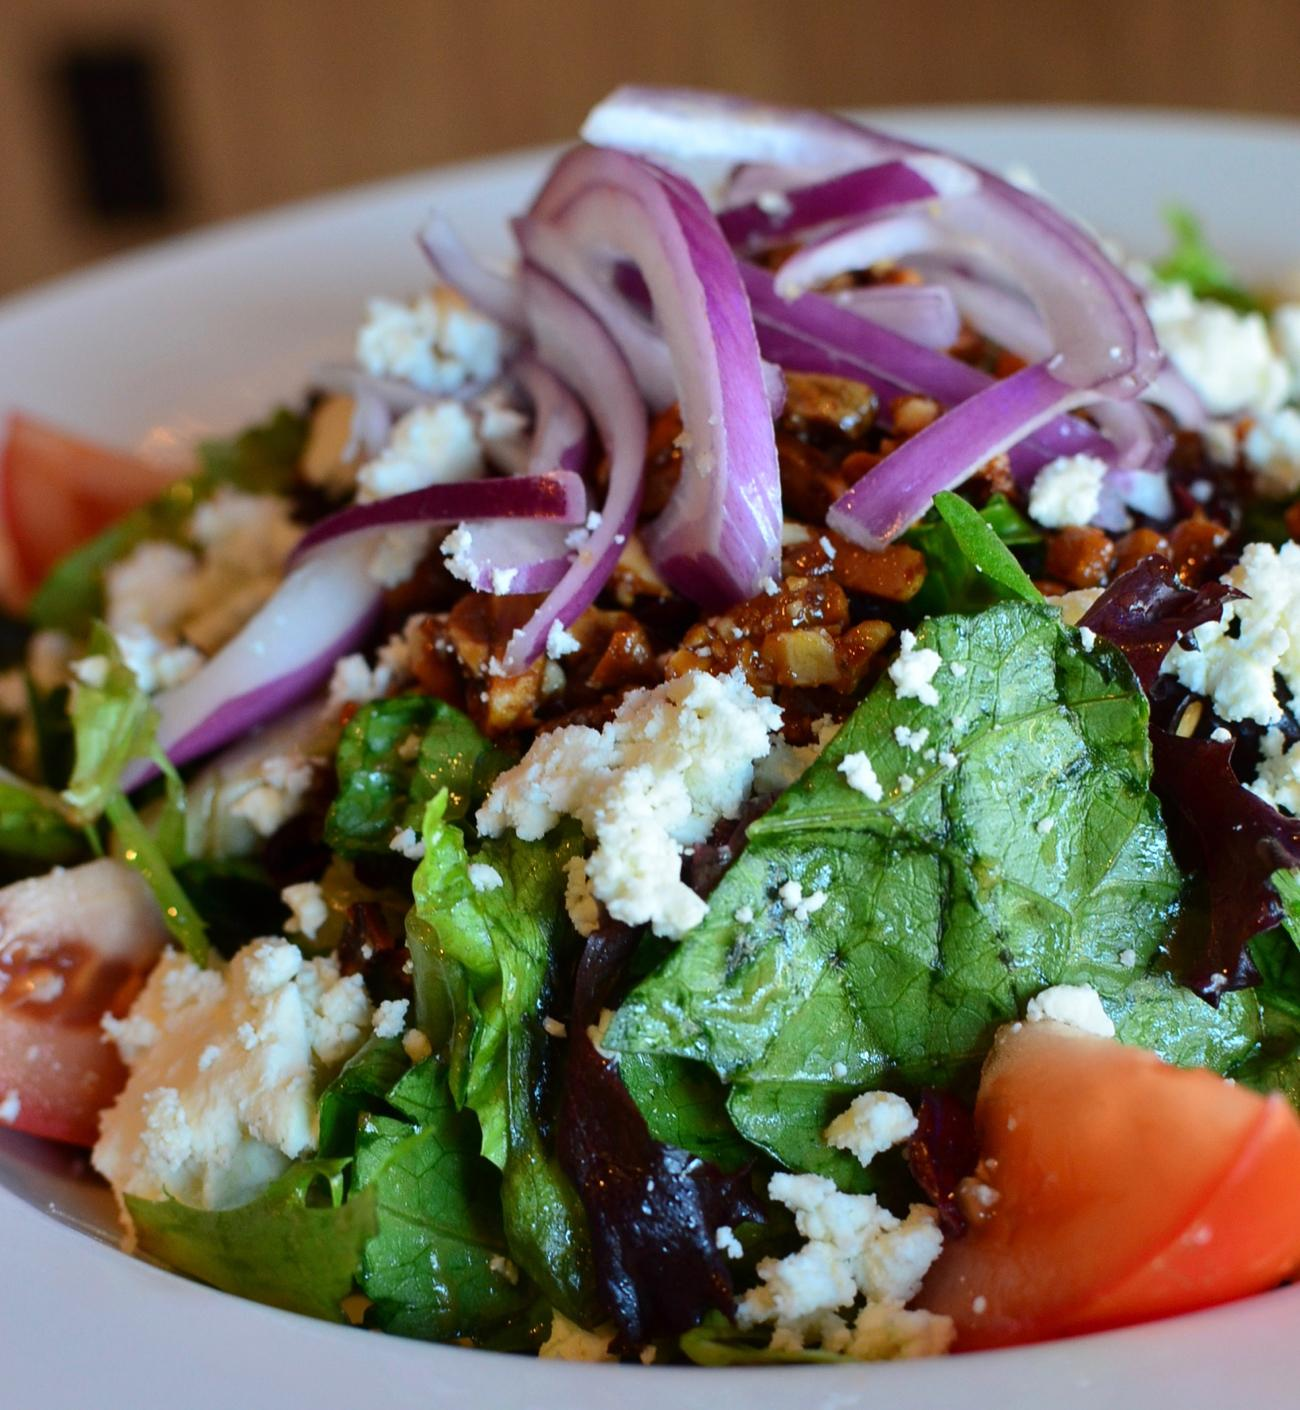 L.L. Salad: crisp salad mix tossed in balsamic vinaigrette, topped with feta cheese, craisins, candied almonds, tomatoes, red onion & served with a garlic roll / Image: Leah Zipperstein, Cincinnati Refined / Published: 1.5.16